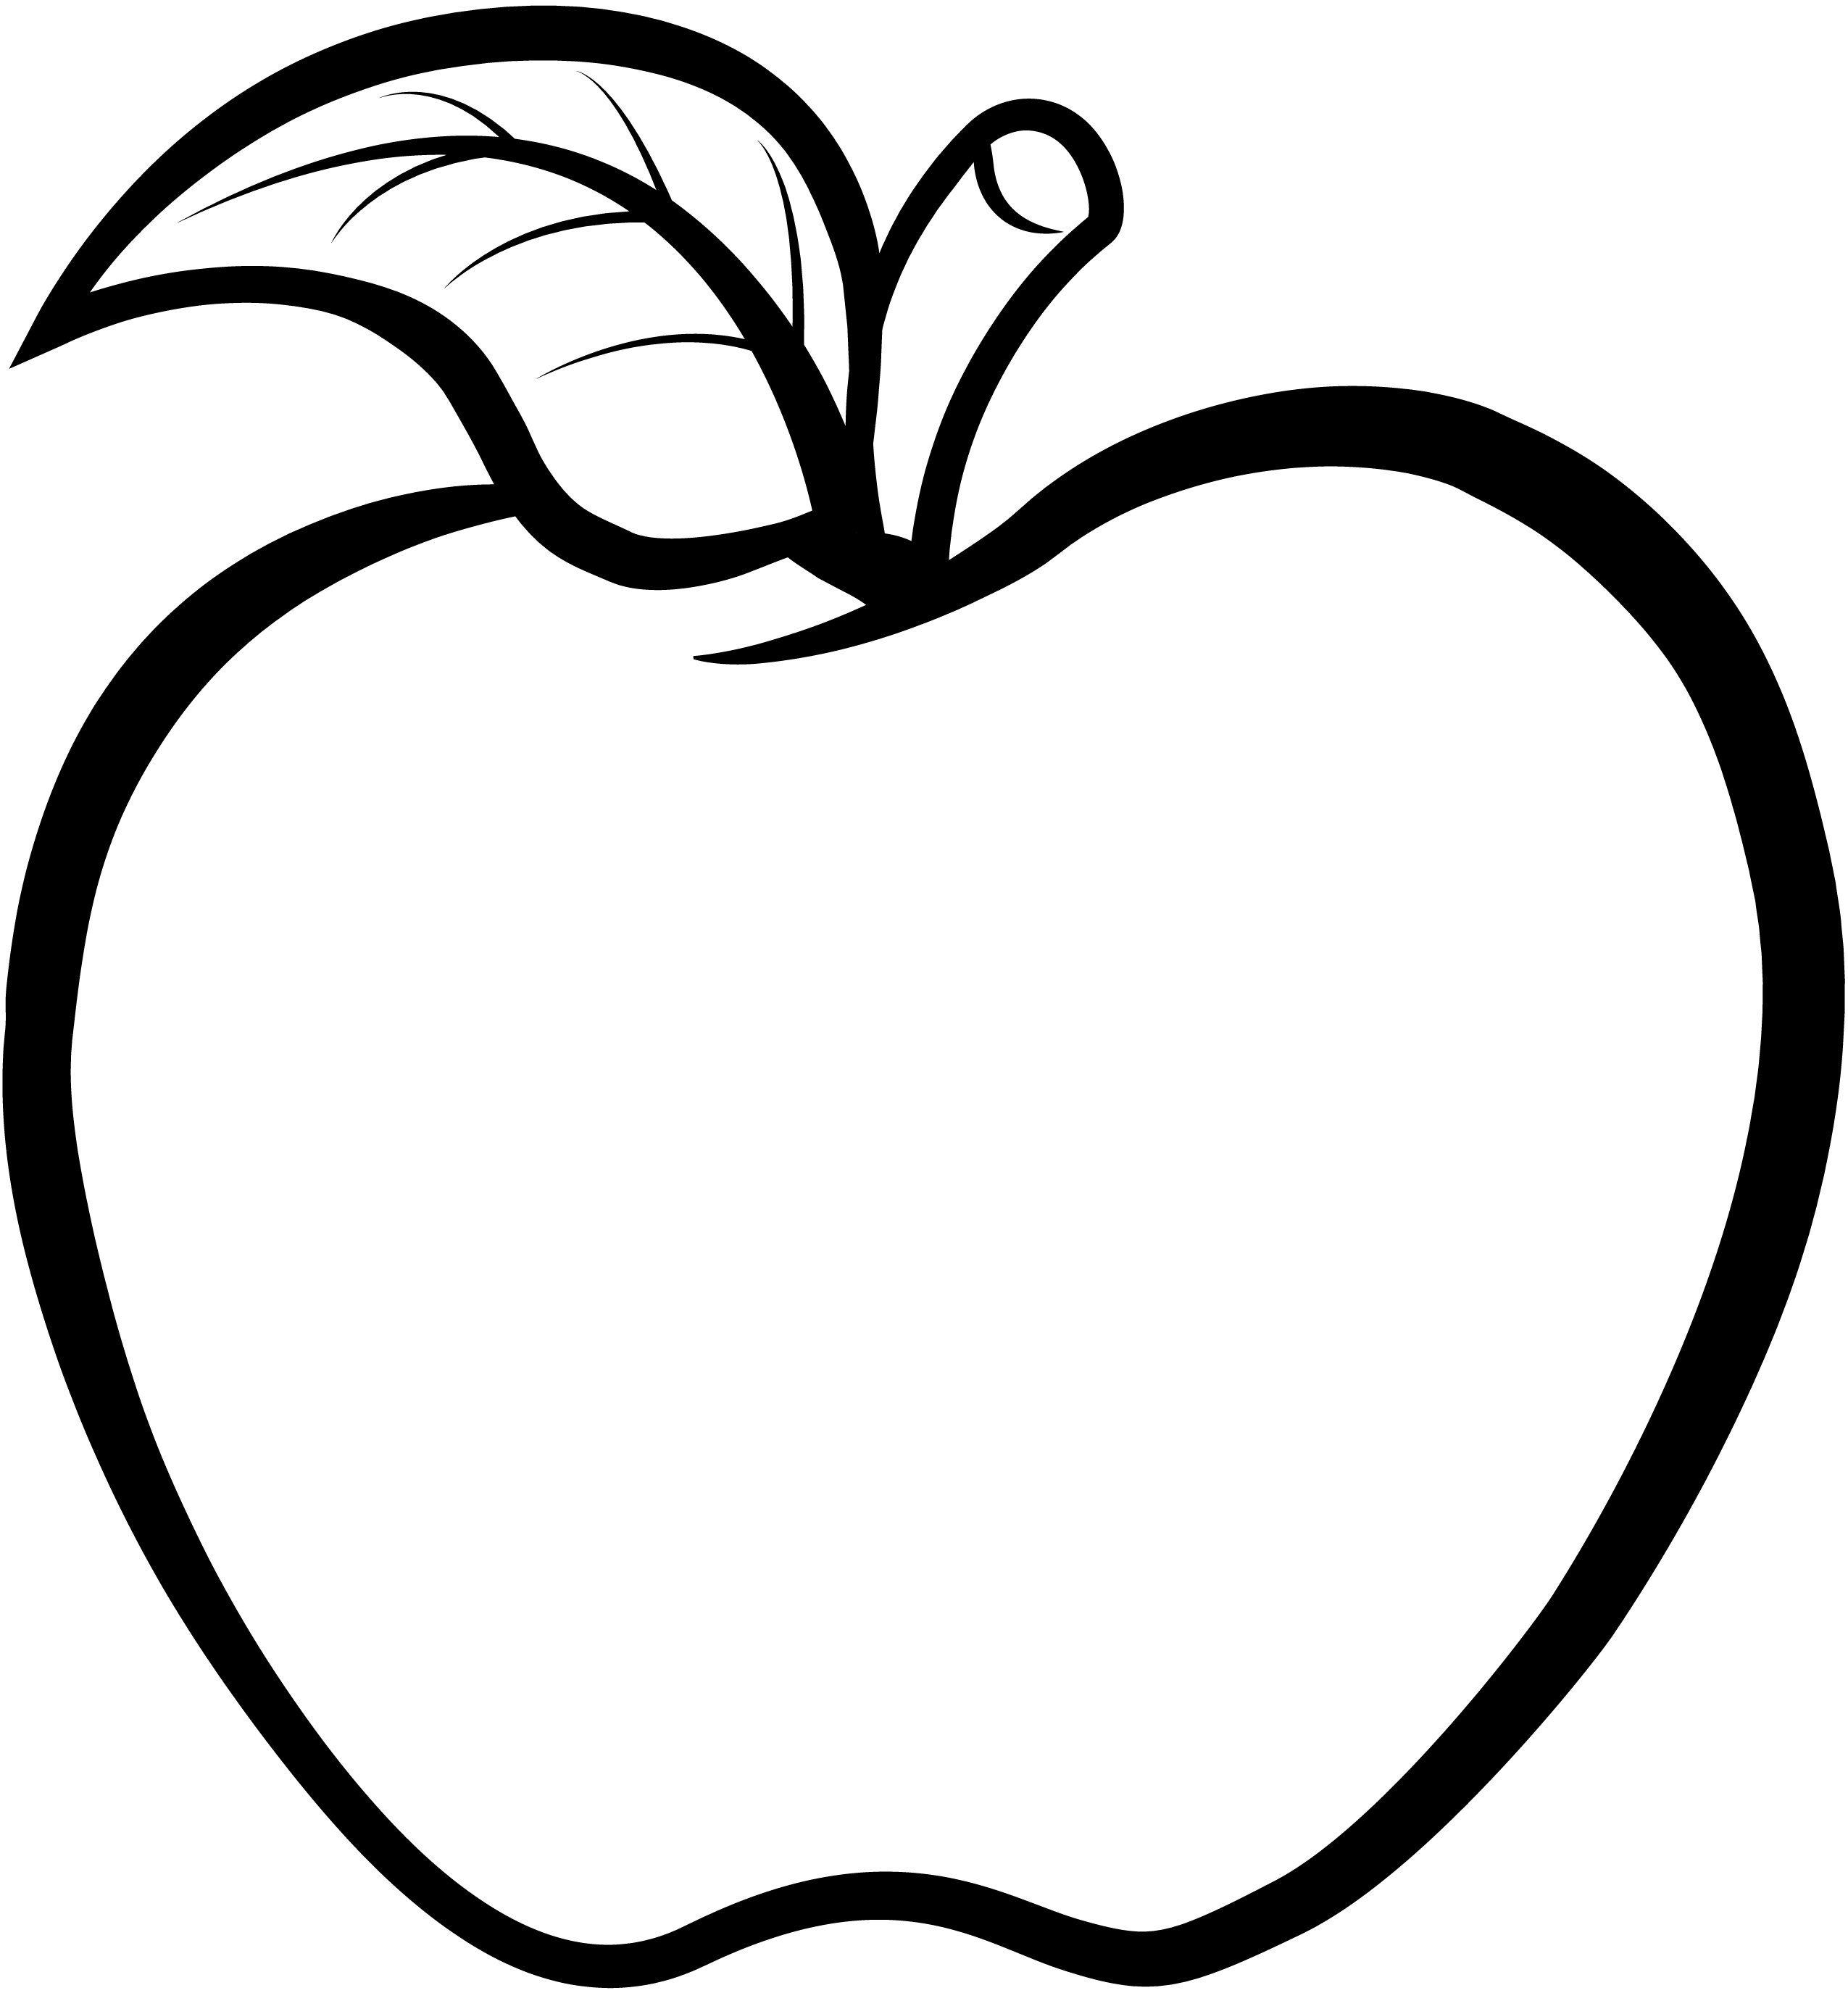 Apple core clipart black and white free clipart freeuse download Abeka | Christian School Digital Overview clipart freeuse download